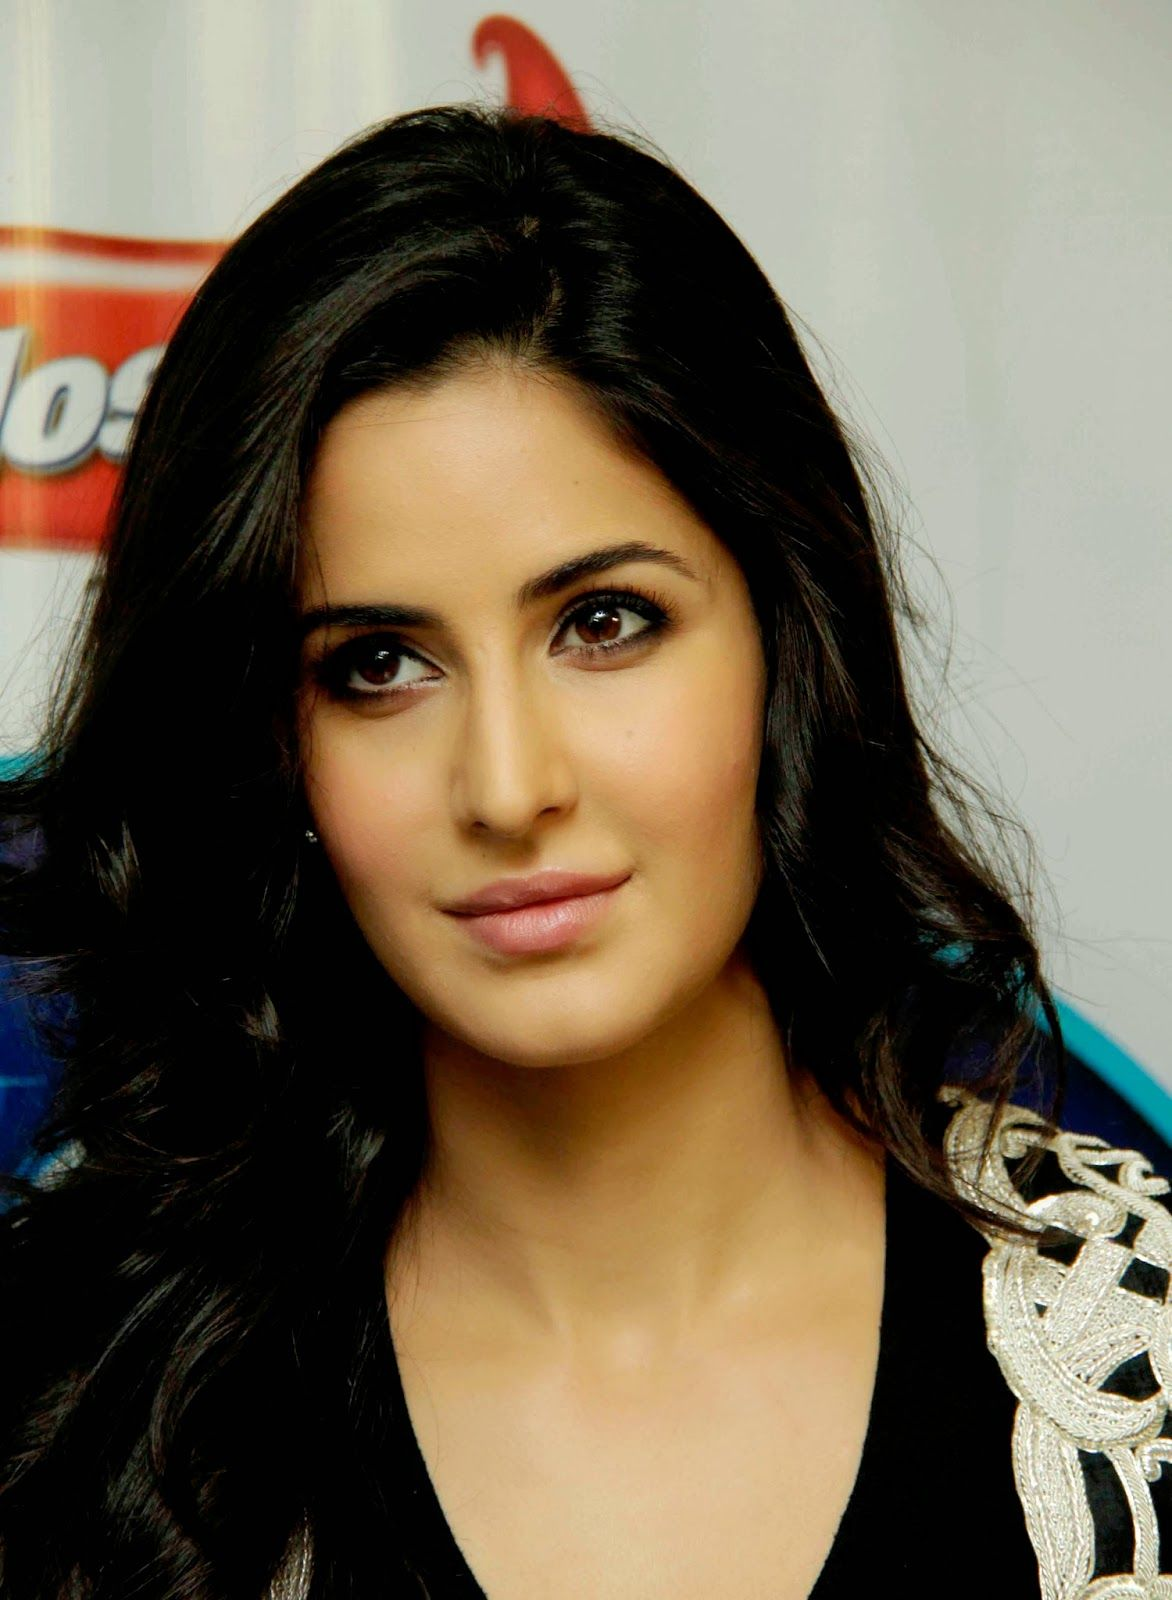 katrina kaif hd images | hd wallpapers of bollywood barbie doll